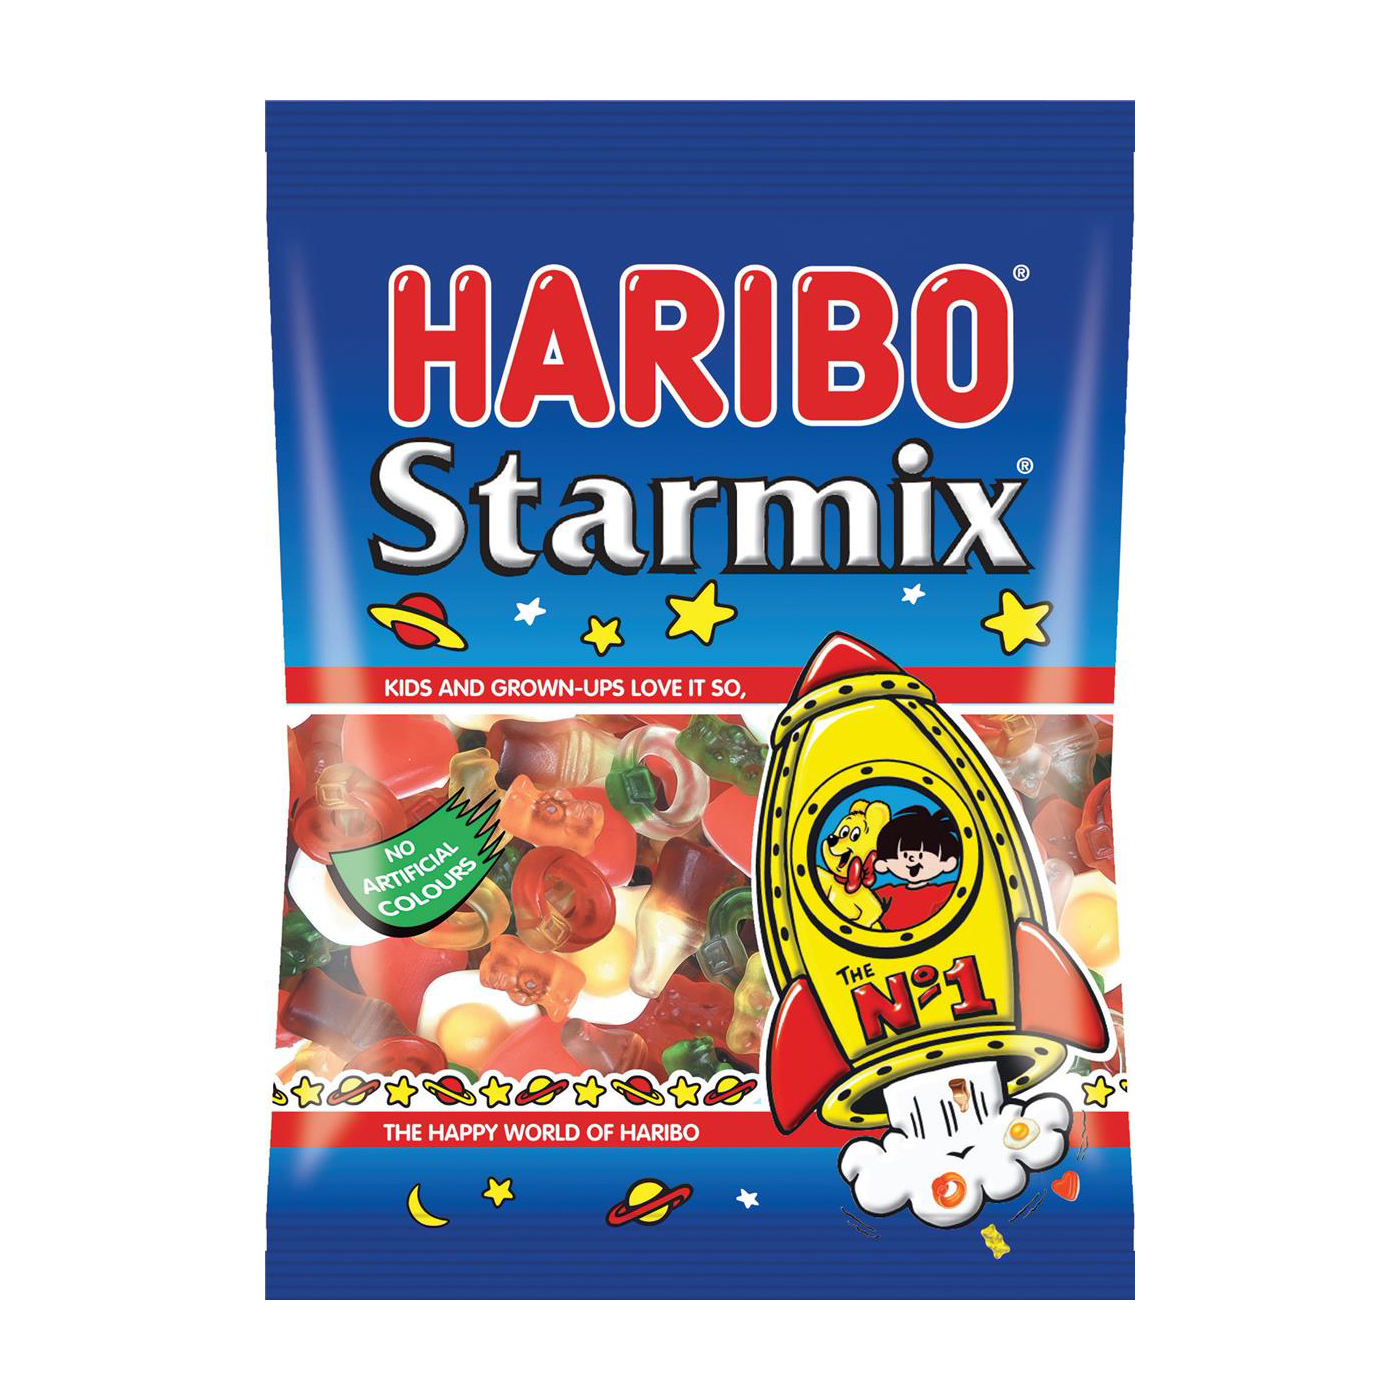 Pukka GLEE Jotta Notepad A4pls Green Ref 3008GLE  Pack of 3 [Free 3 Packs of Haribo Starmix] Jan-Mar 20